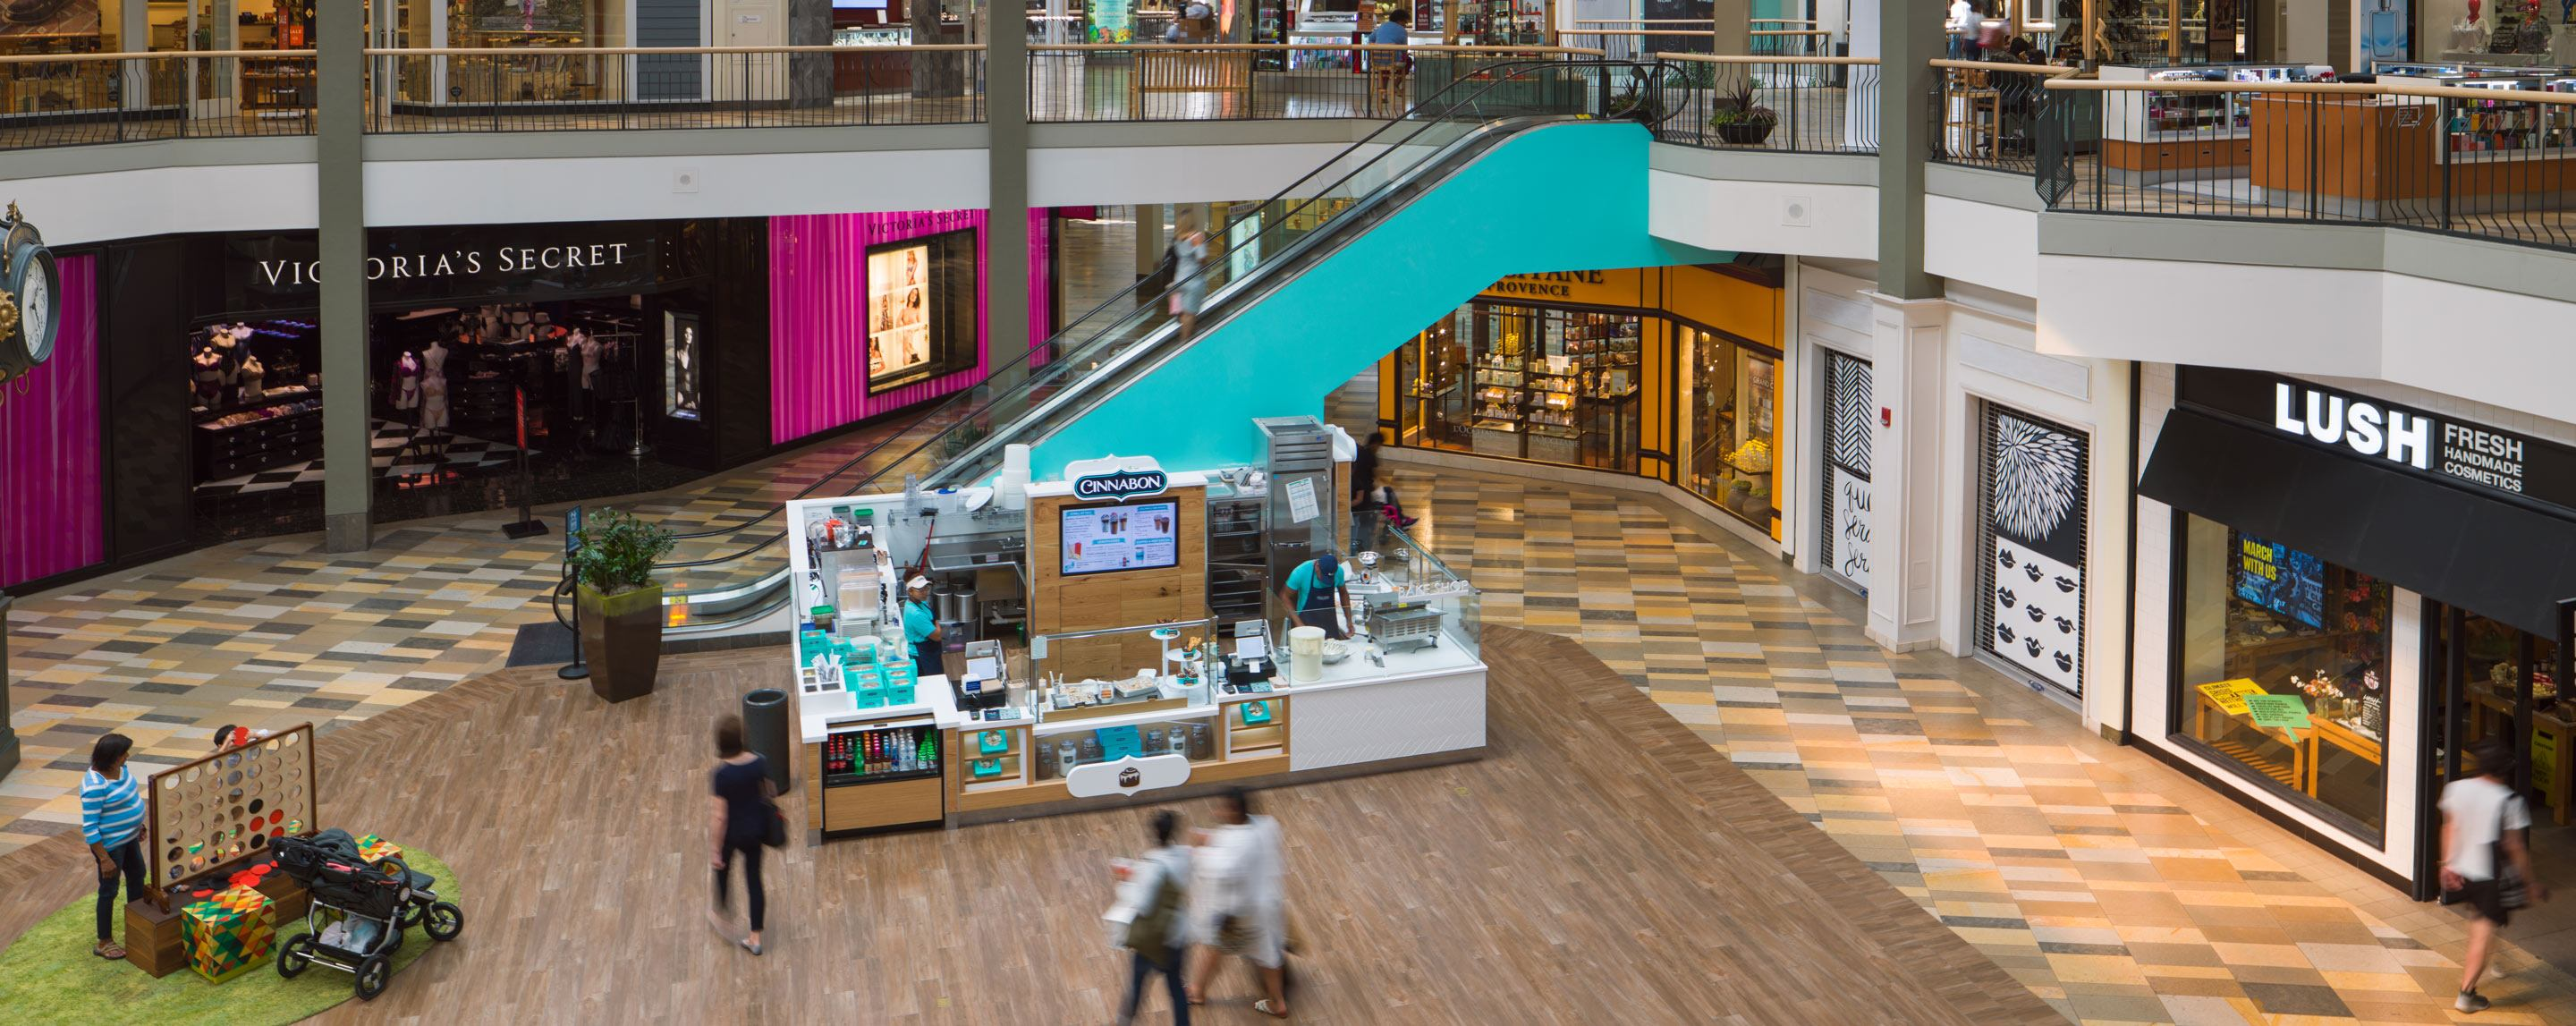 A blue escalator leads to the second floor of a mall. Stores such as Lush and Cinnabon are visible.